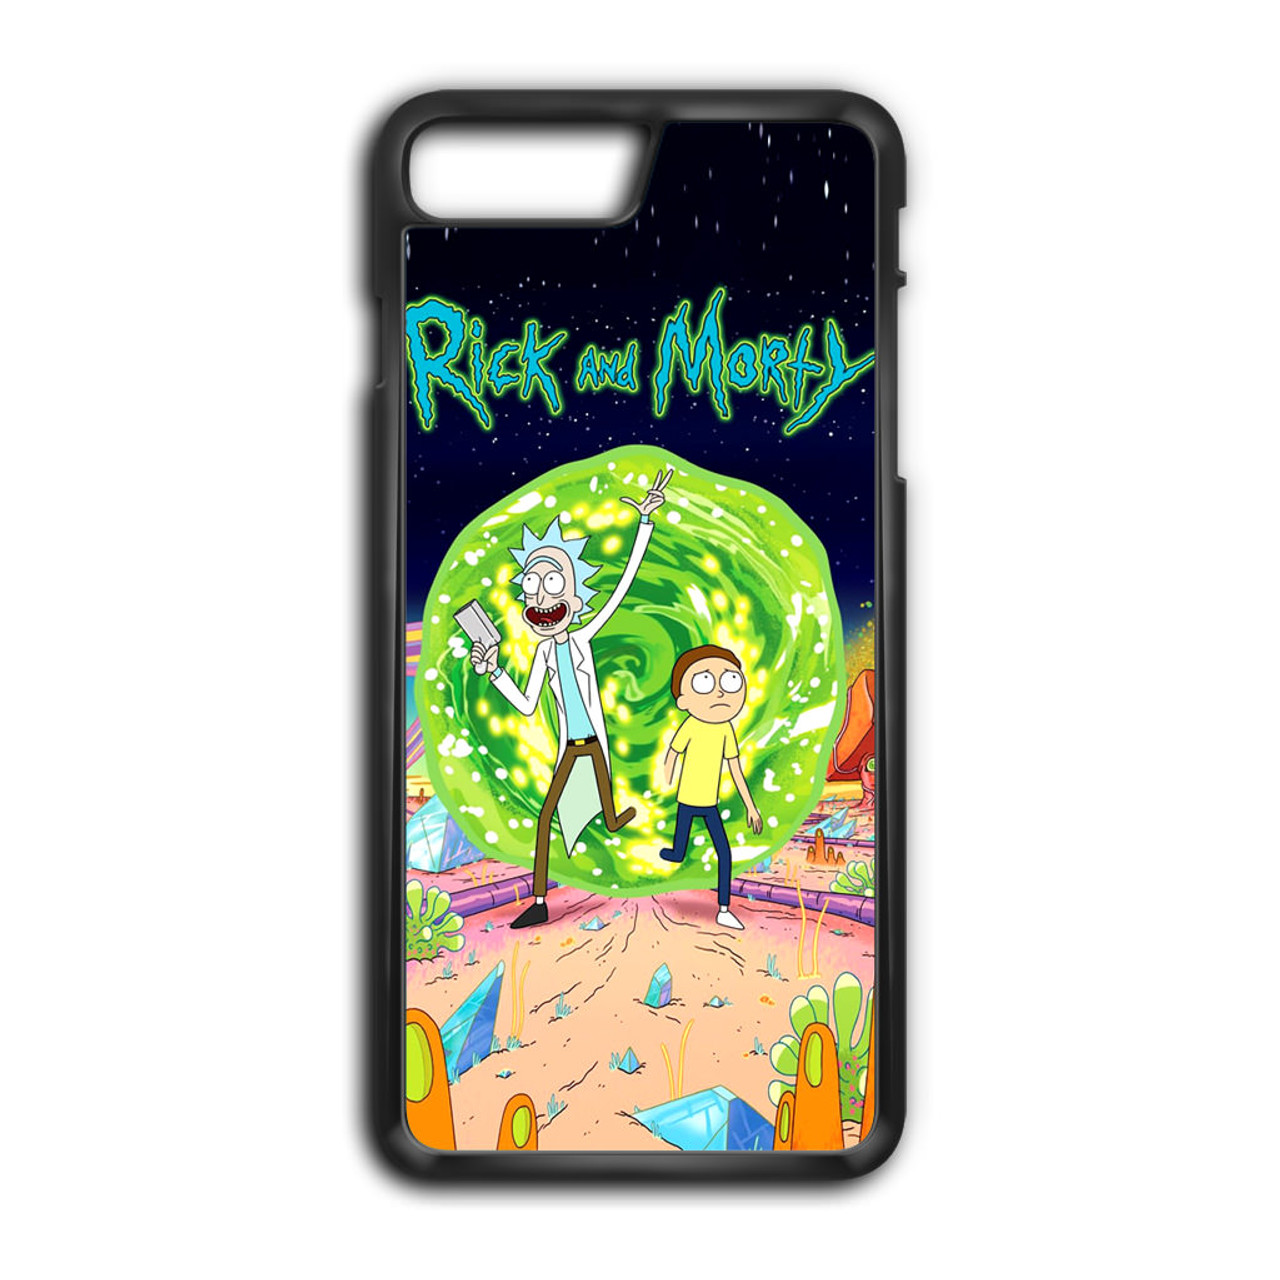 reputable site ee8cd 1dde5 Rick and Morty Poster iPhone 7 Plus Case